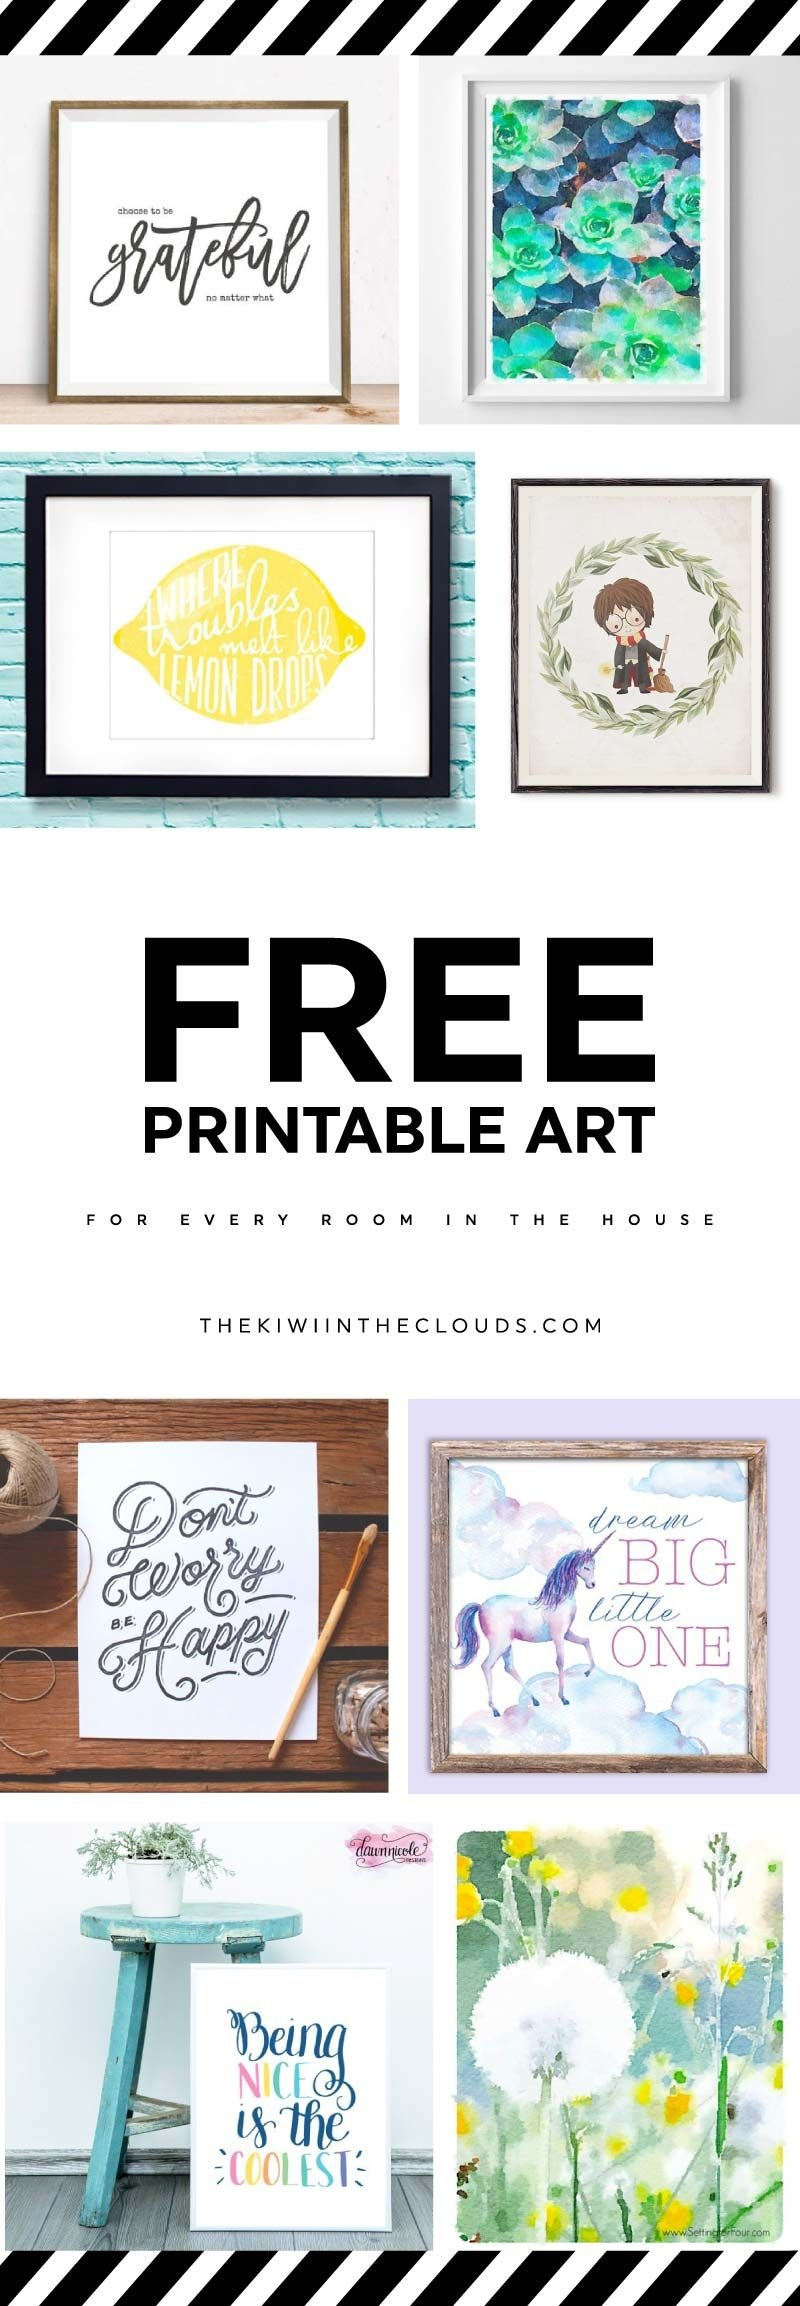 21 Free Printable Art Prints To Quickly Decorate The Barest Of Walls - Free Printable Artwork For Home